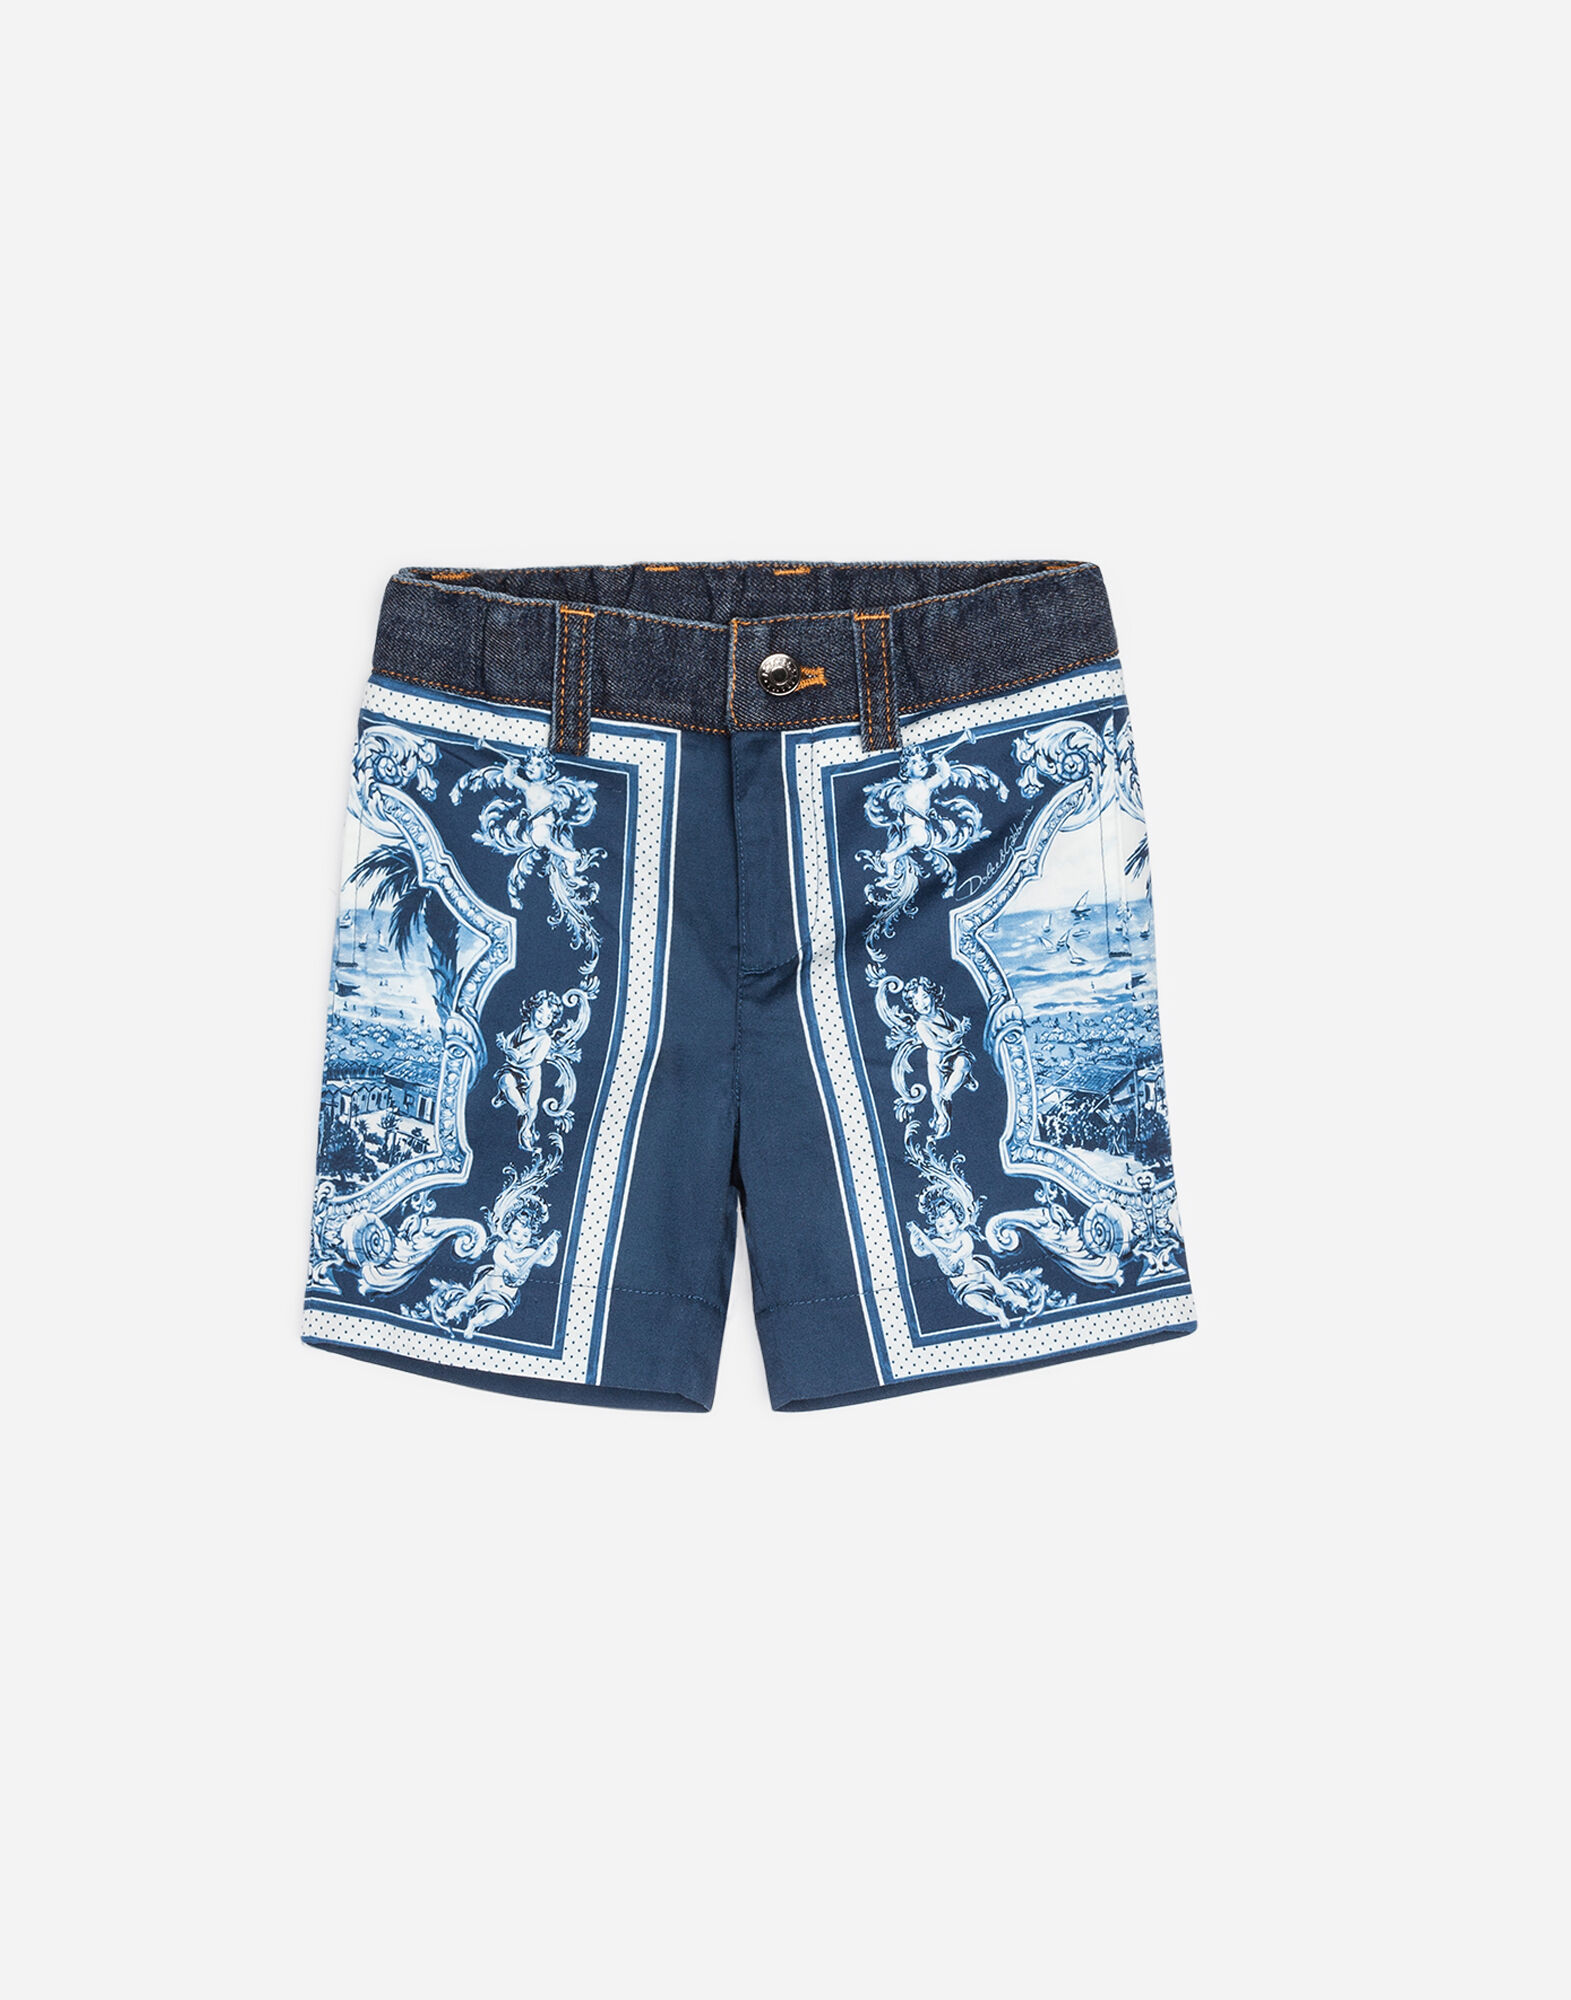 PRINTED COTTON AND DENIM SHORTS